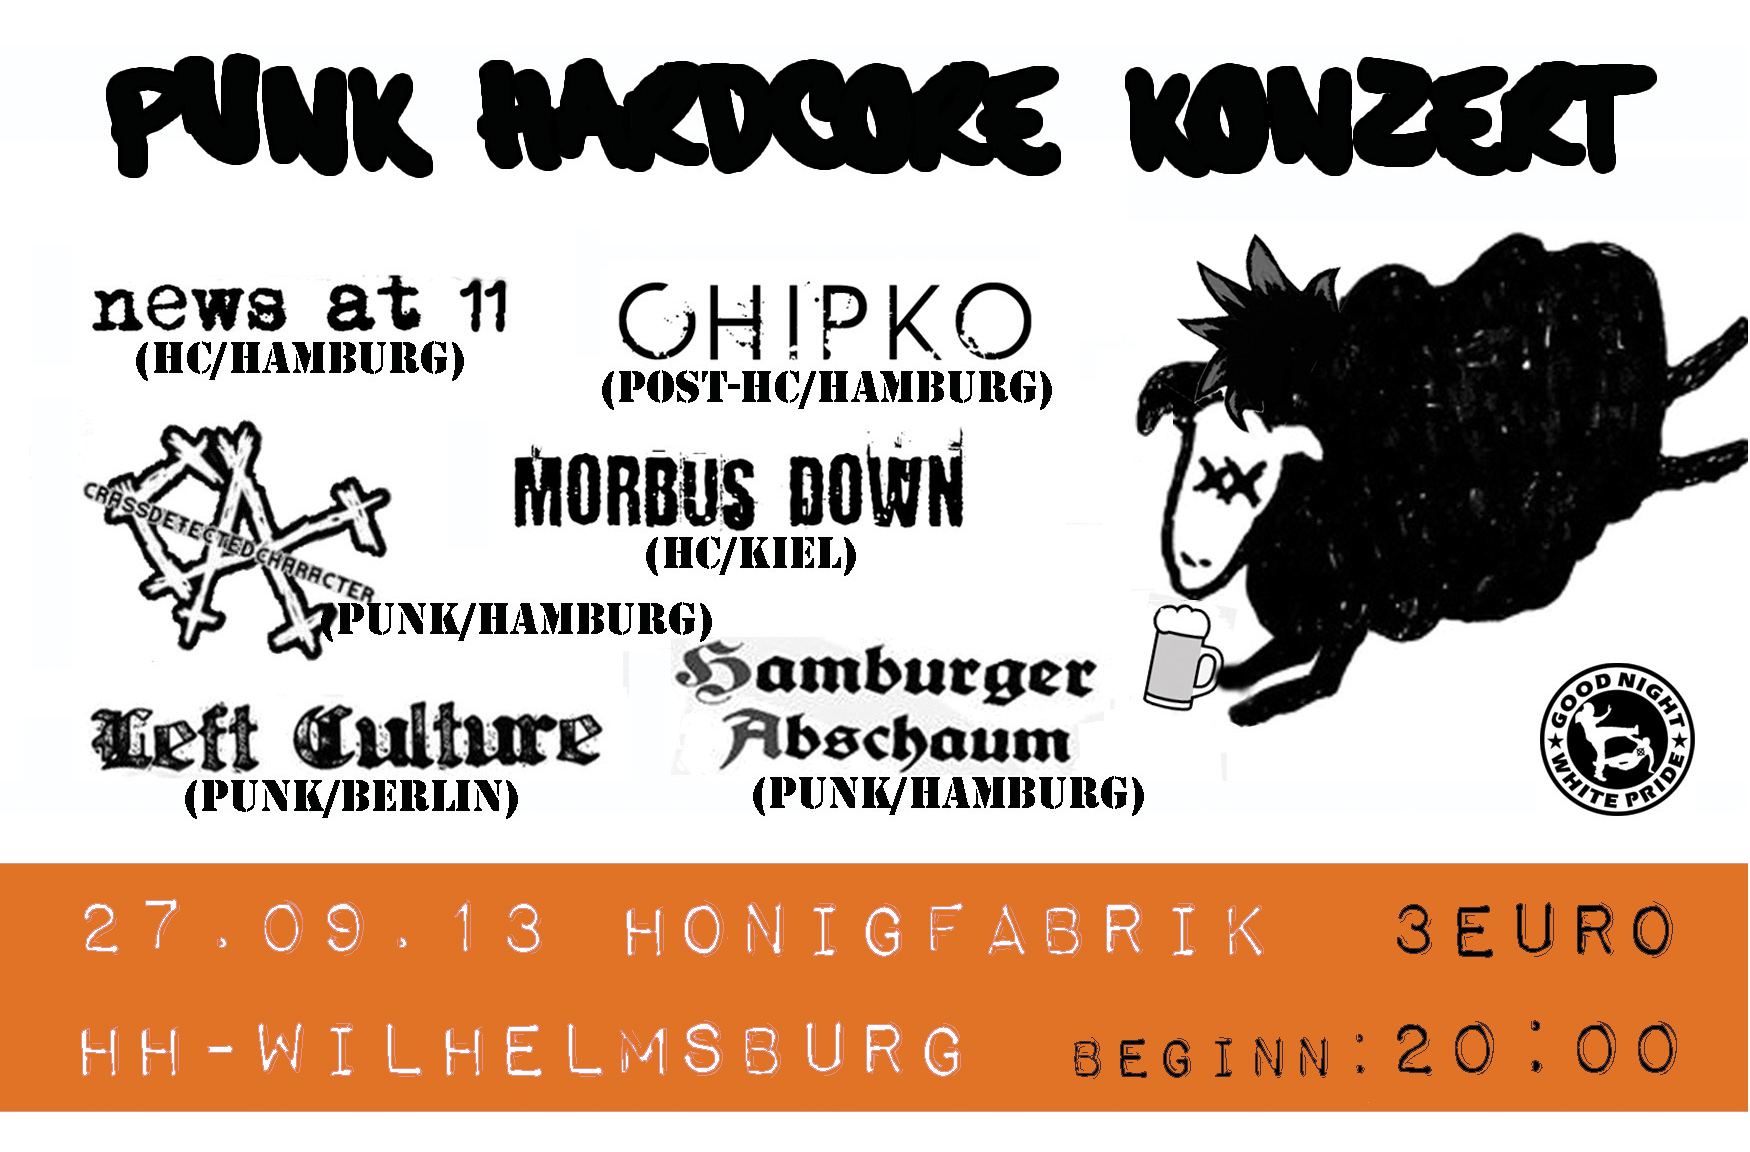 hamburger abschaum + left culture + morbus down + crass defected character + news at 11 + ohipko @honigfabrik, hamburg, 27.09.2013